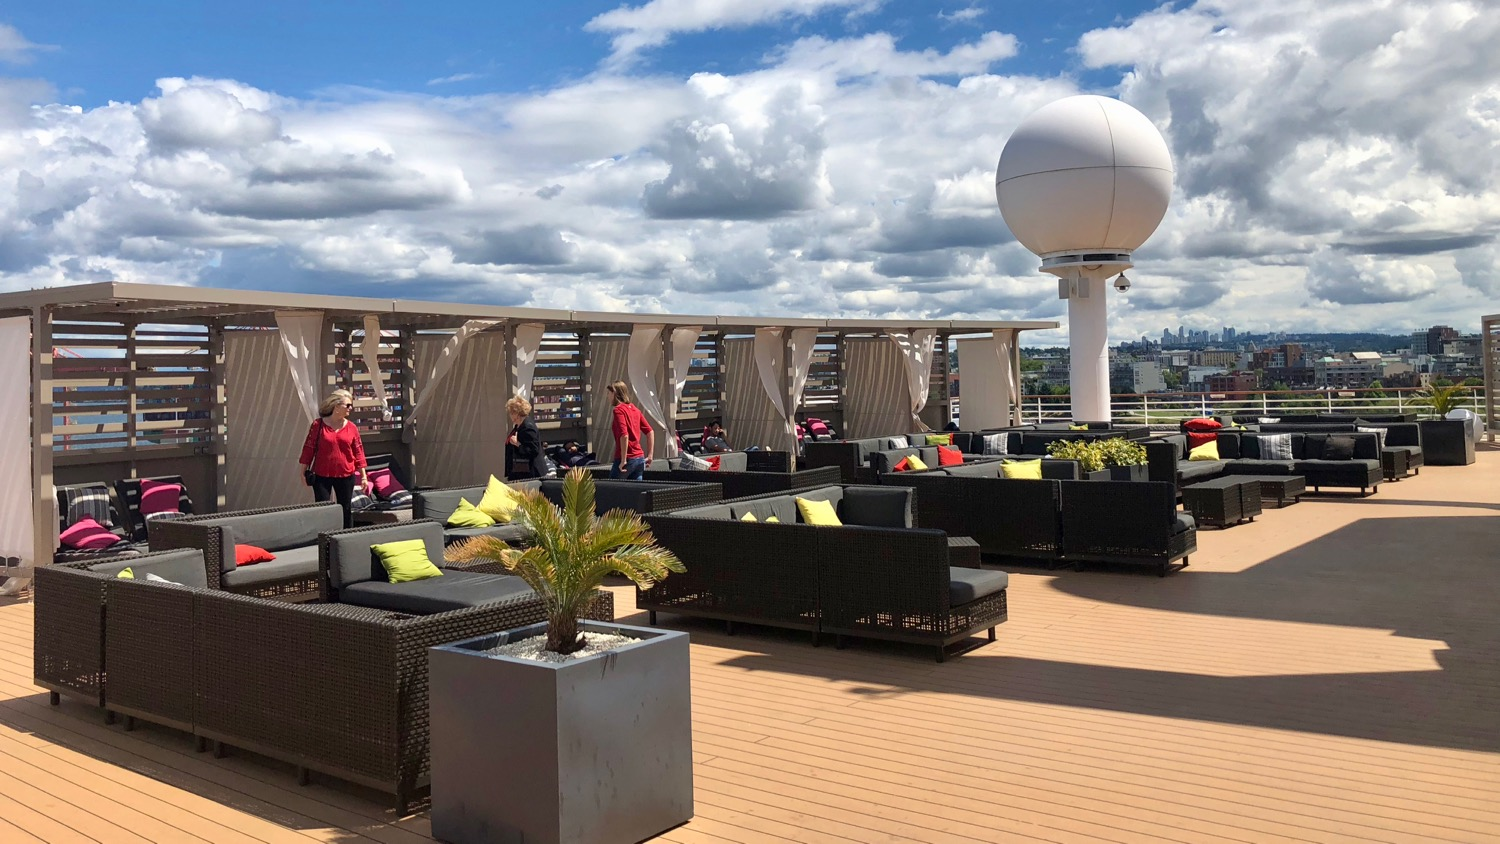 The rooftop terrace on deck 12 where we watched many of the World Cup games.